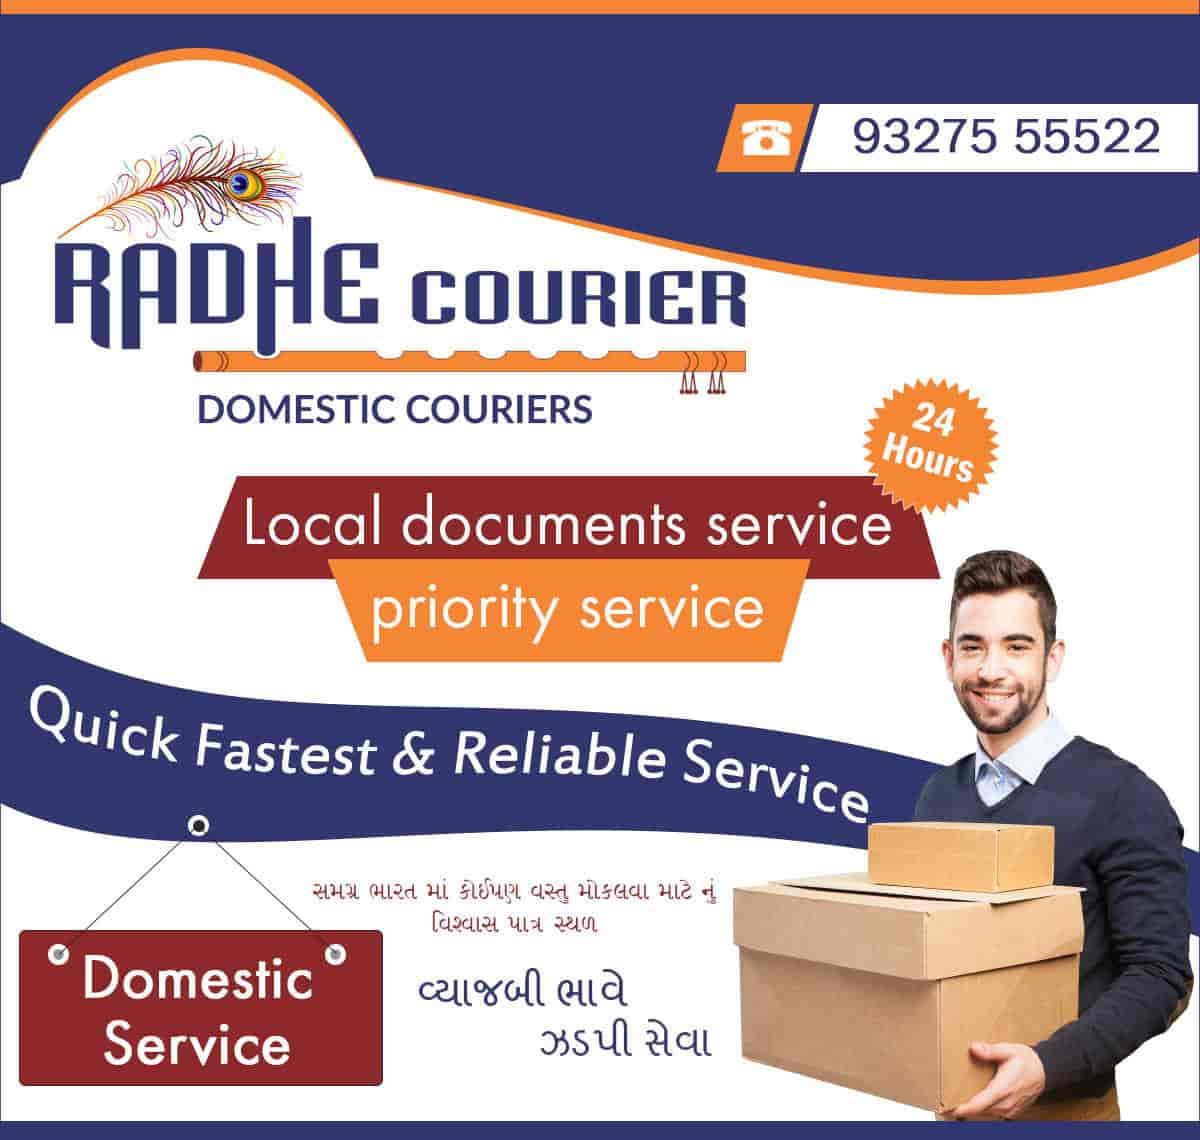 Top 100 Courier Services In Ahmedabad Best Domestic Courier Services Justdial